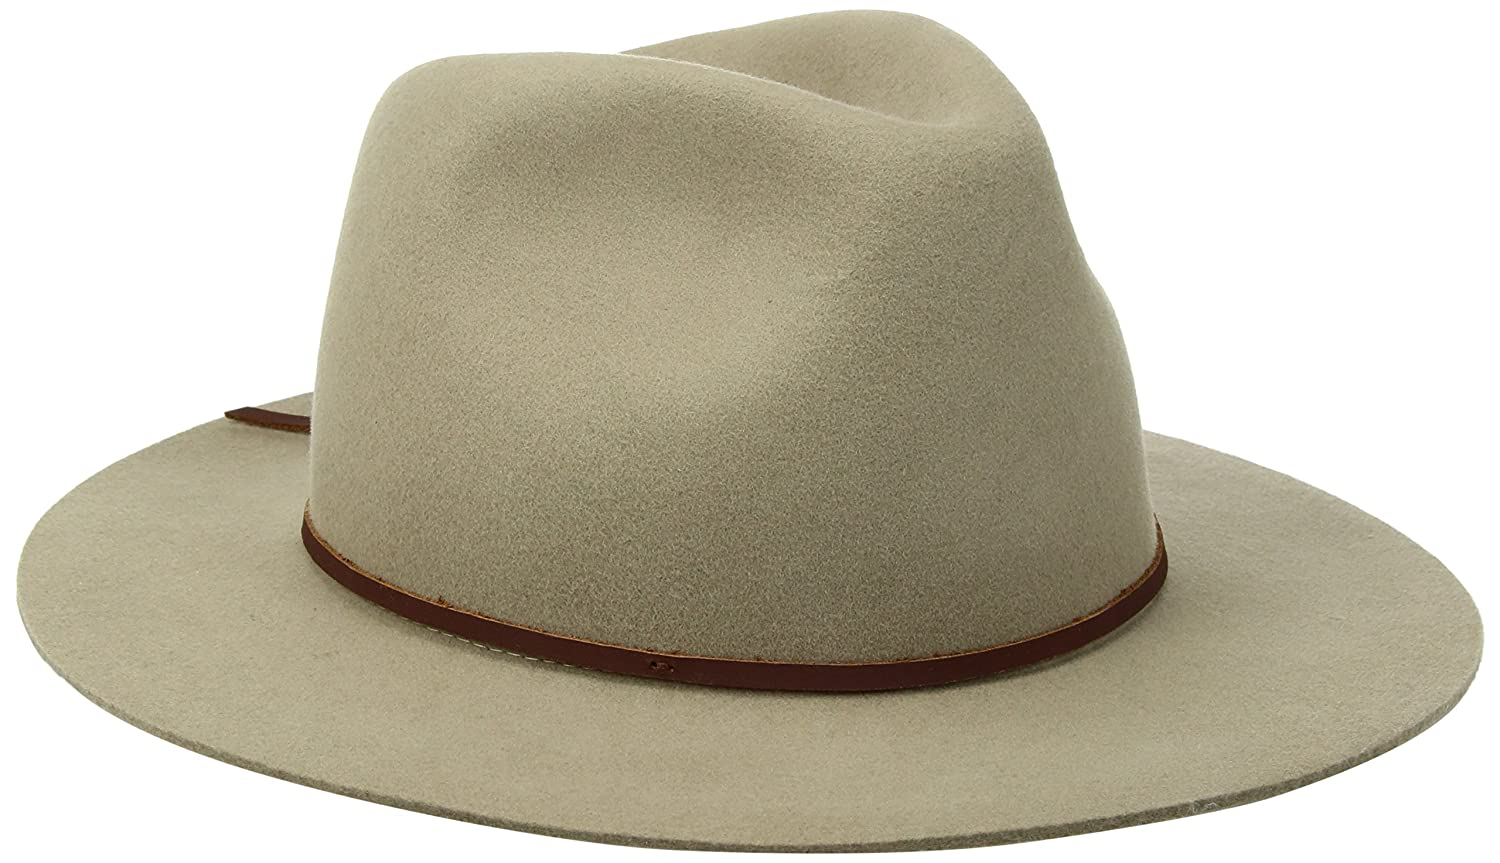 2dcf282345ead1 Fedoras & Trilby Hats : Online Shopping for Clothing, Shoes, Jewelry ...